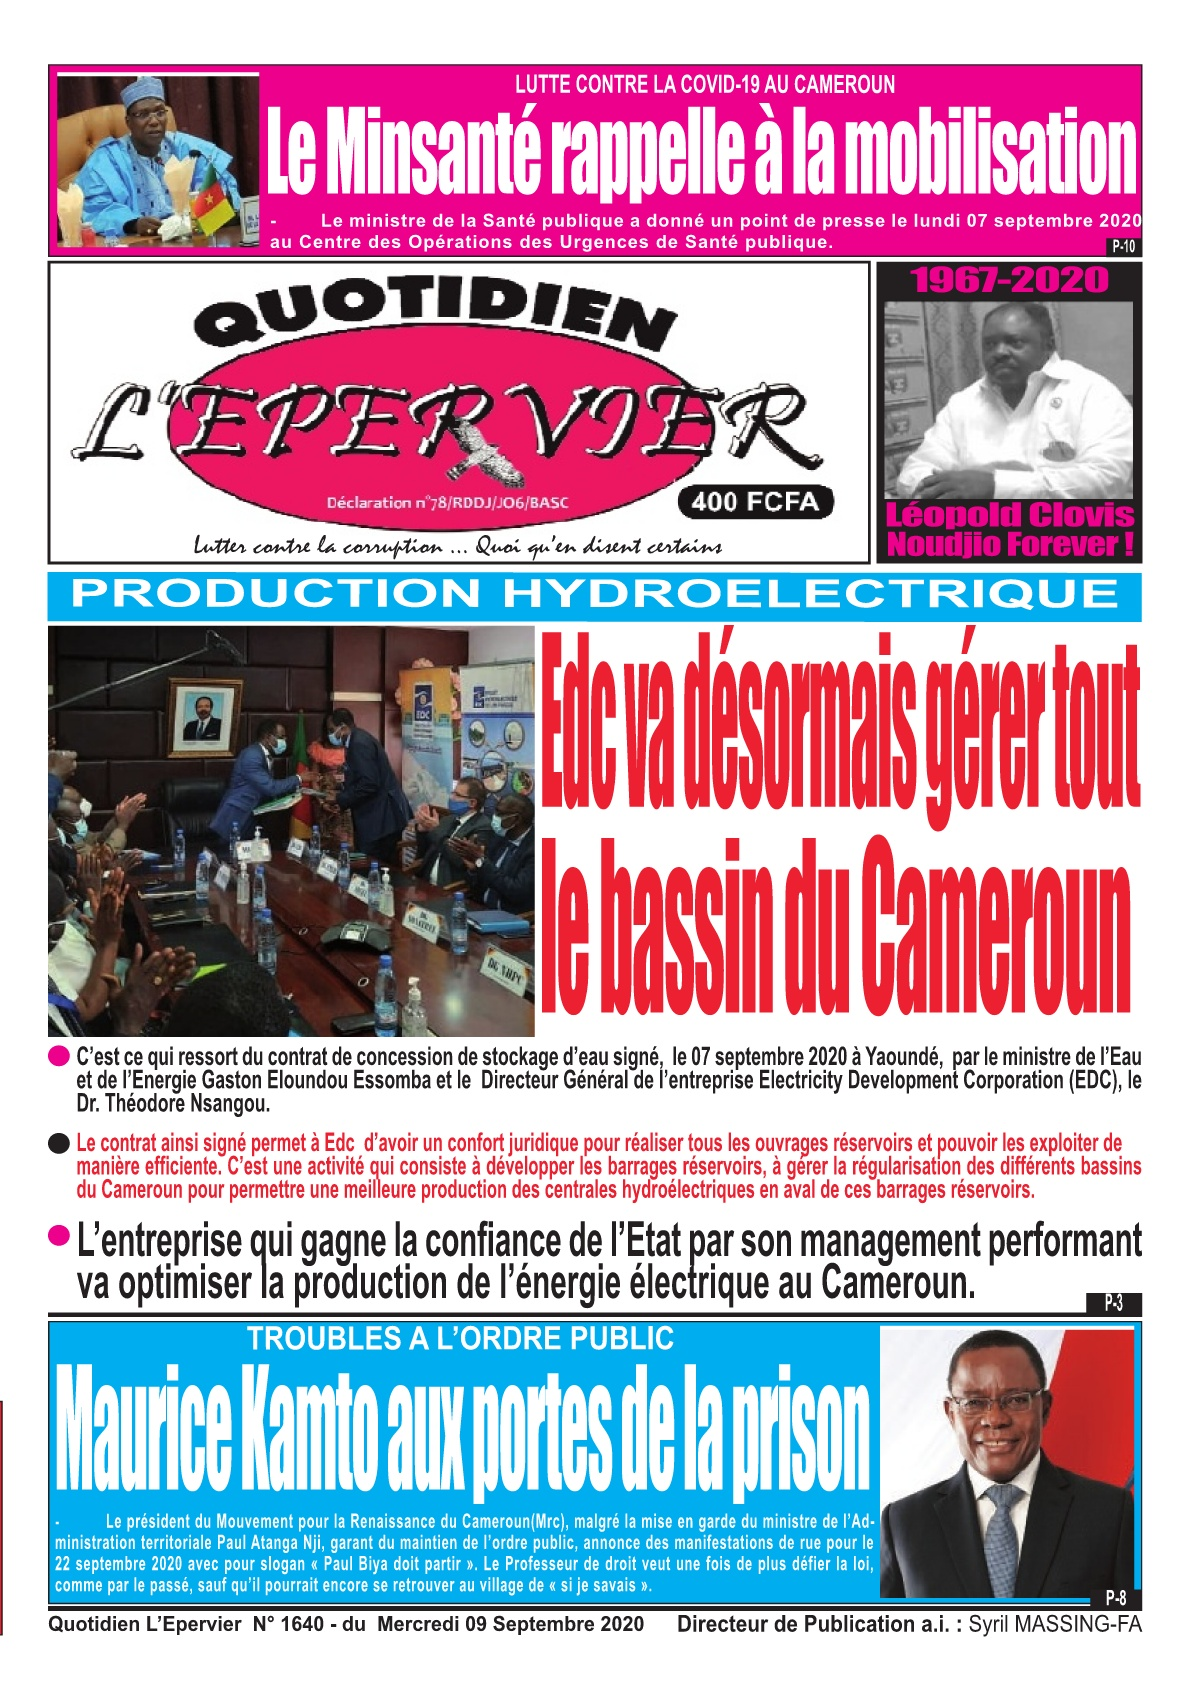 L'Epervier - 09/09/2020